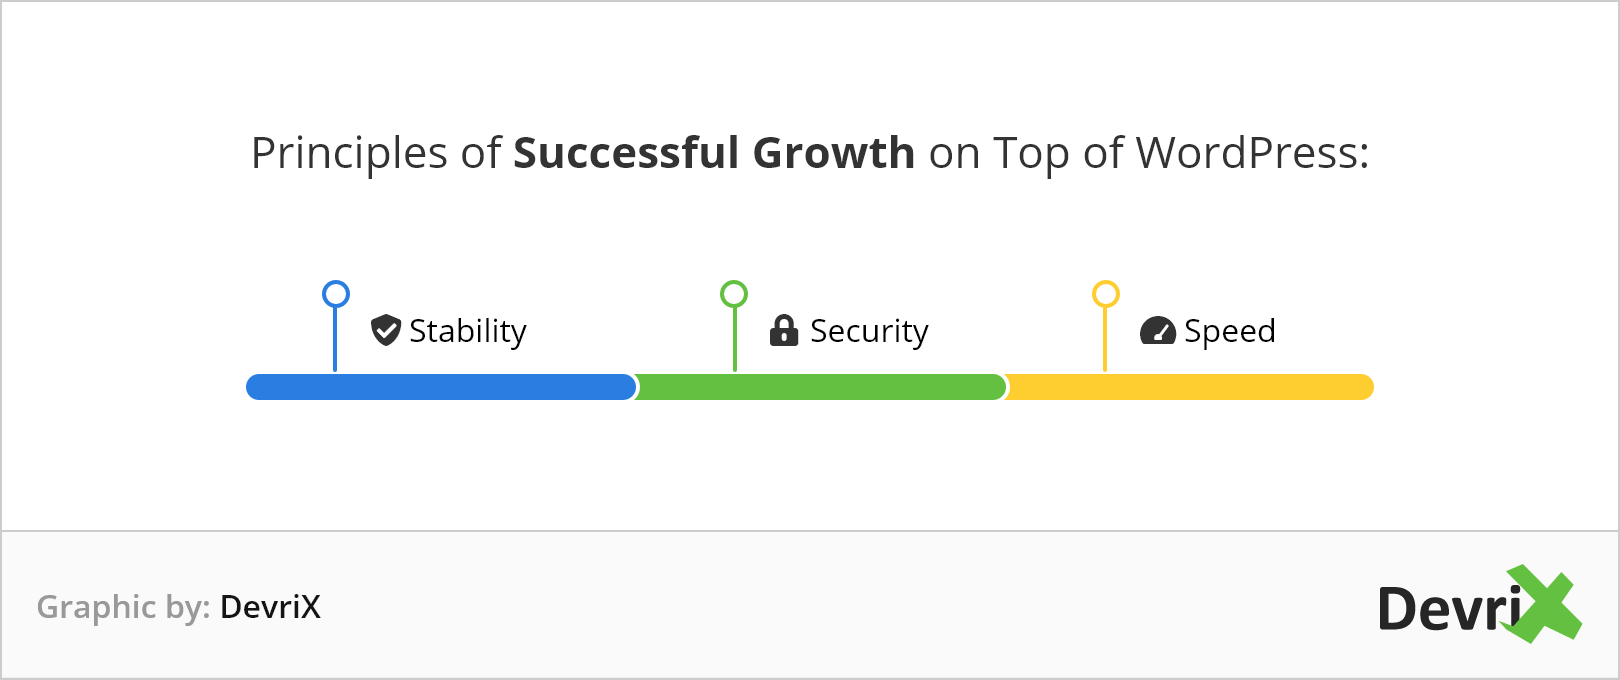 Principles of successful growth on top of WordPress